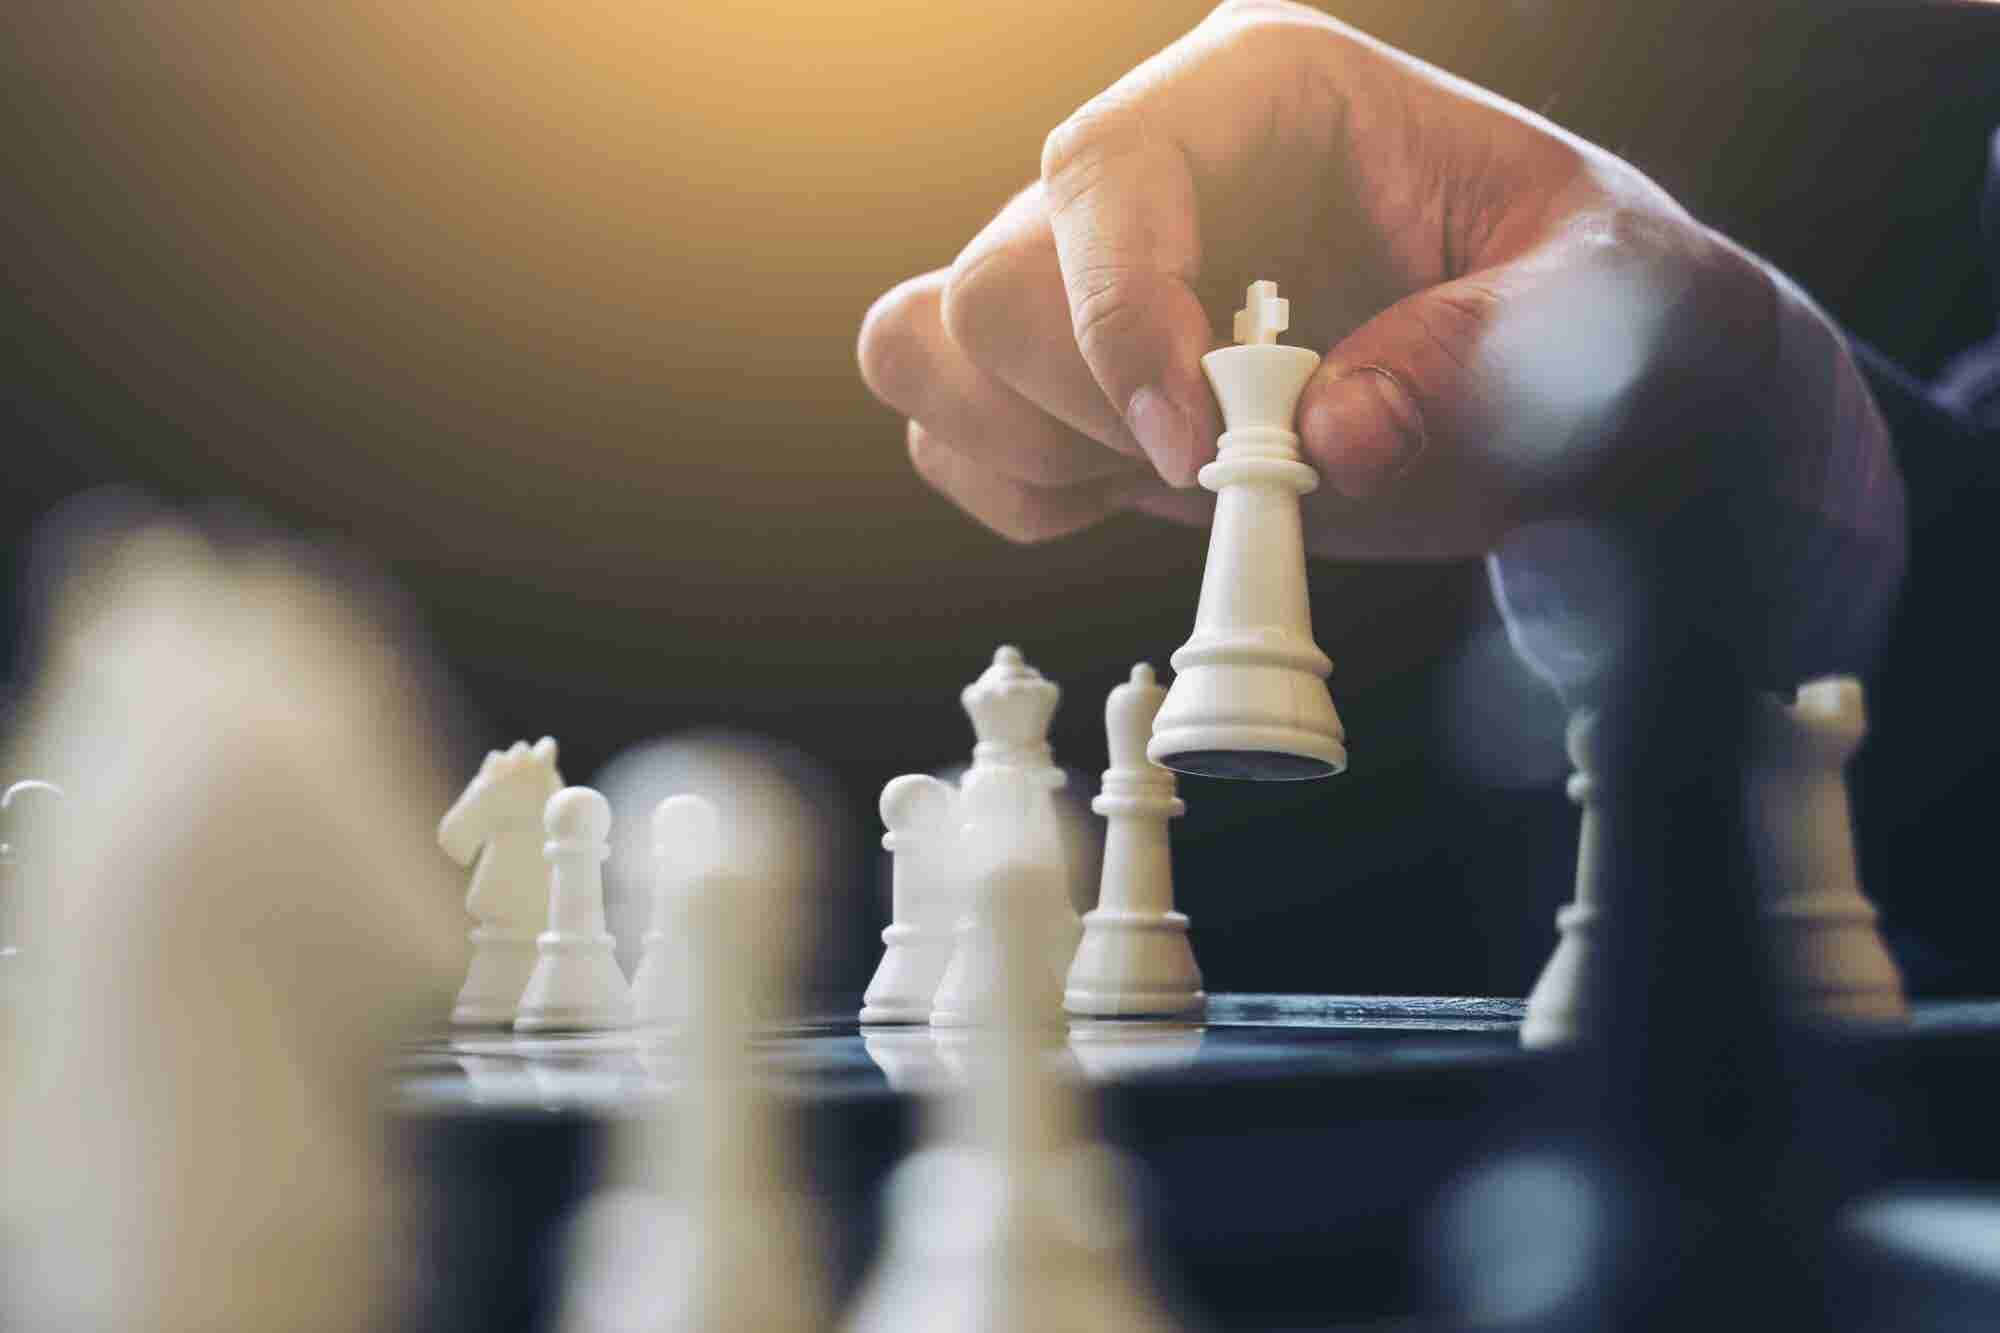 Why Entrepreneurs in 2019 Should Play the 'Chess' Version of Taxes, Not the 'Checkers' One